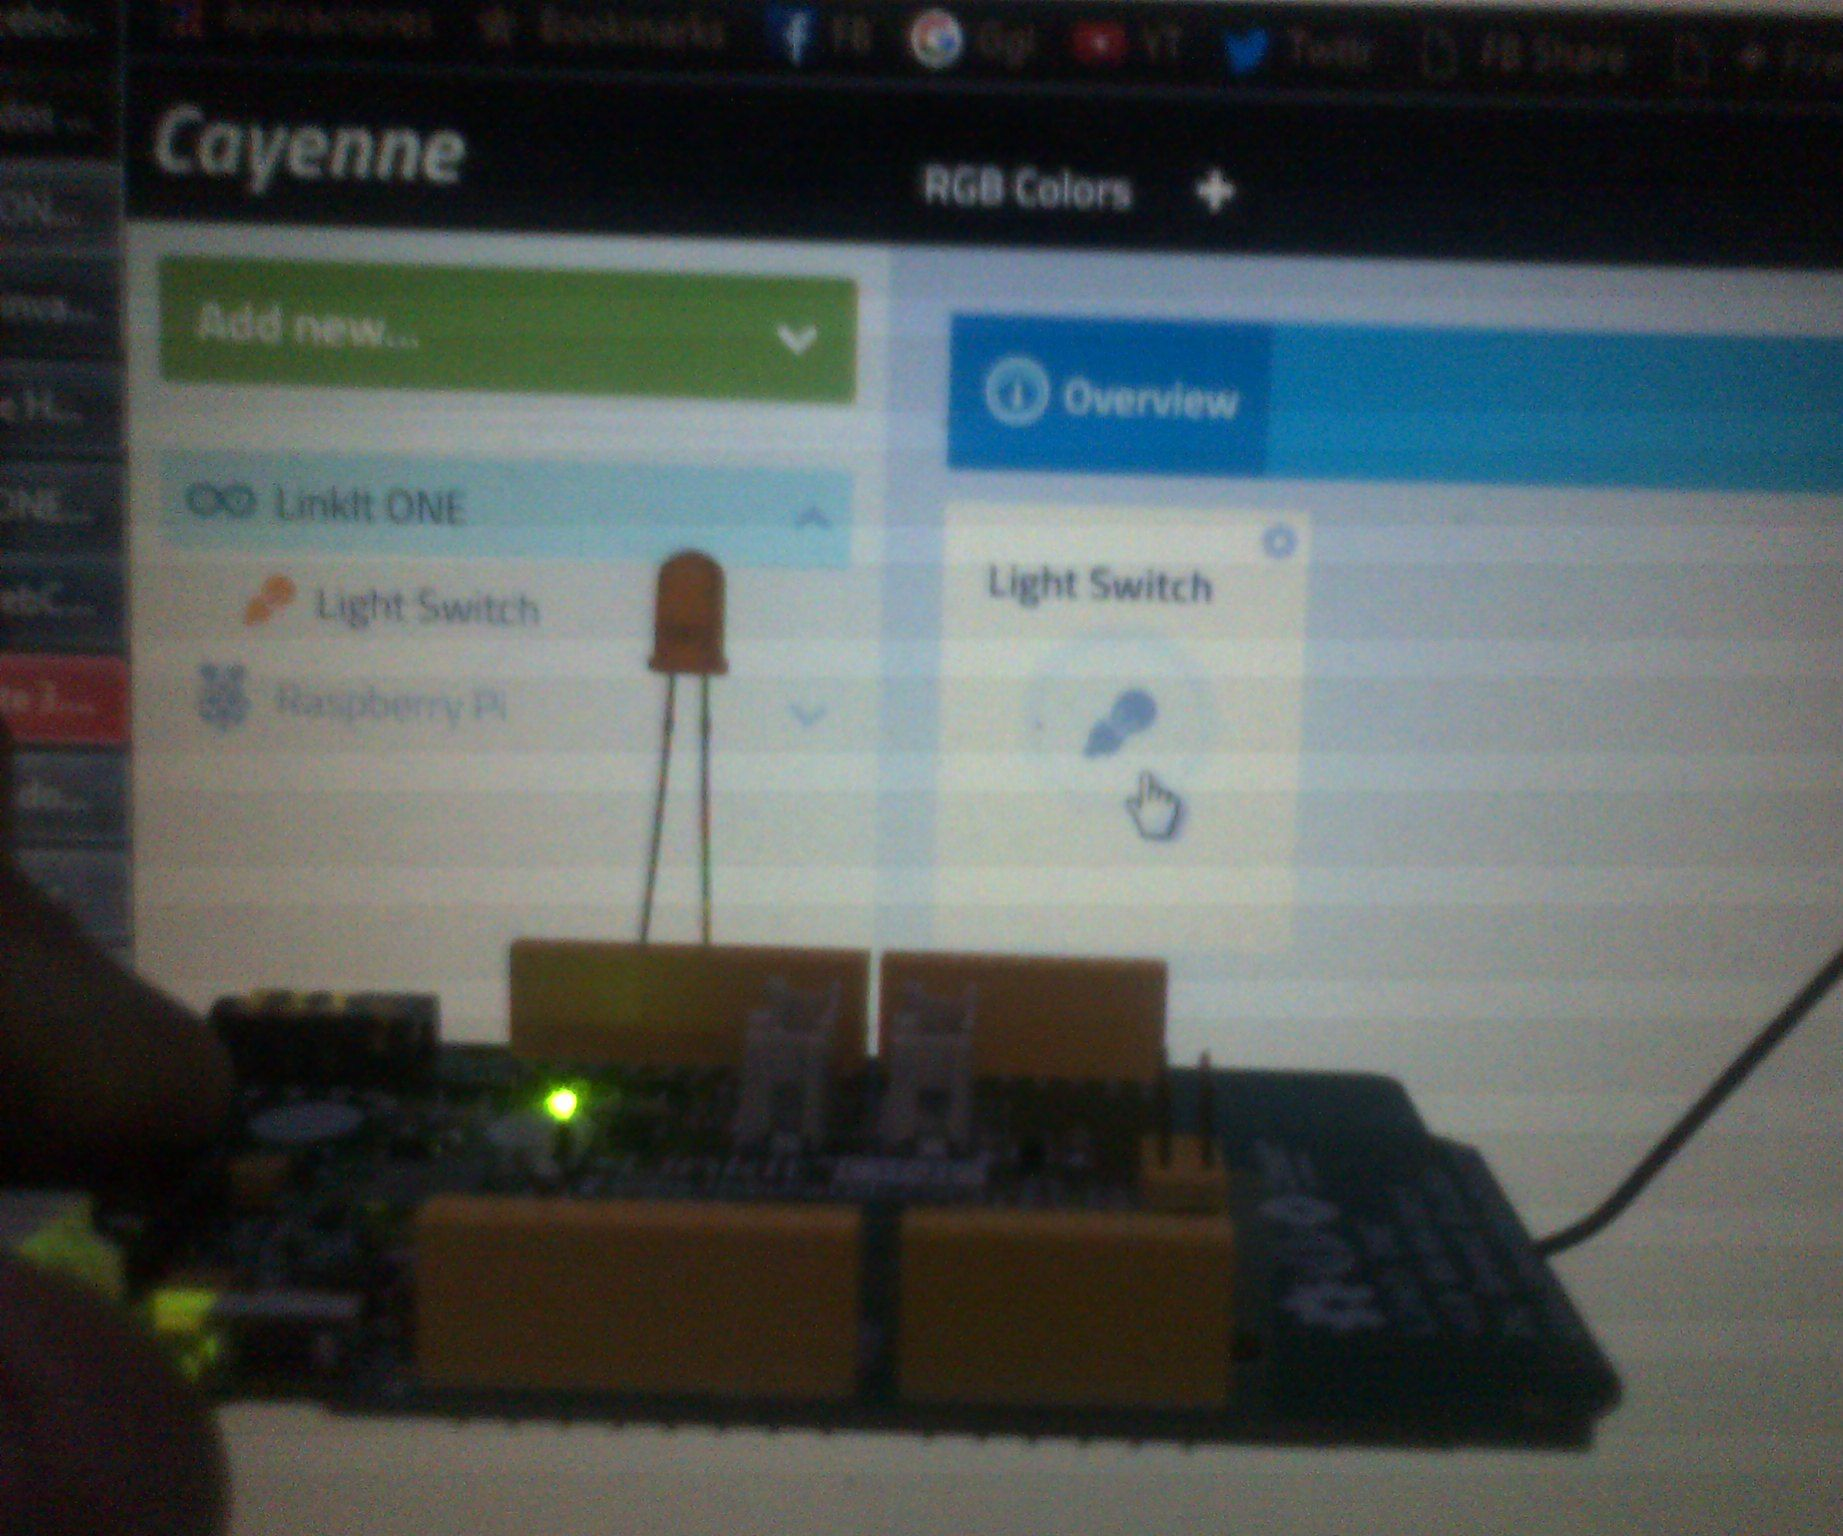 Connecting LinkIt ONE to Cayenne